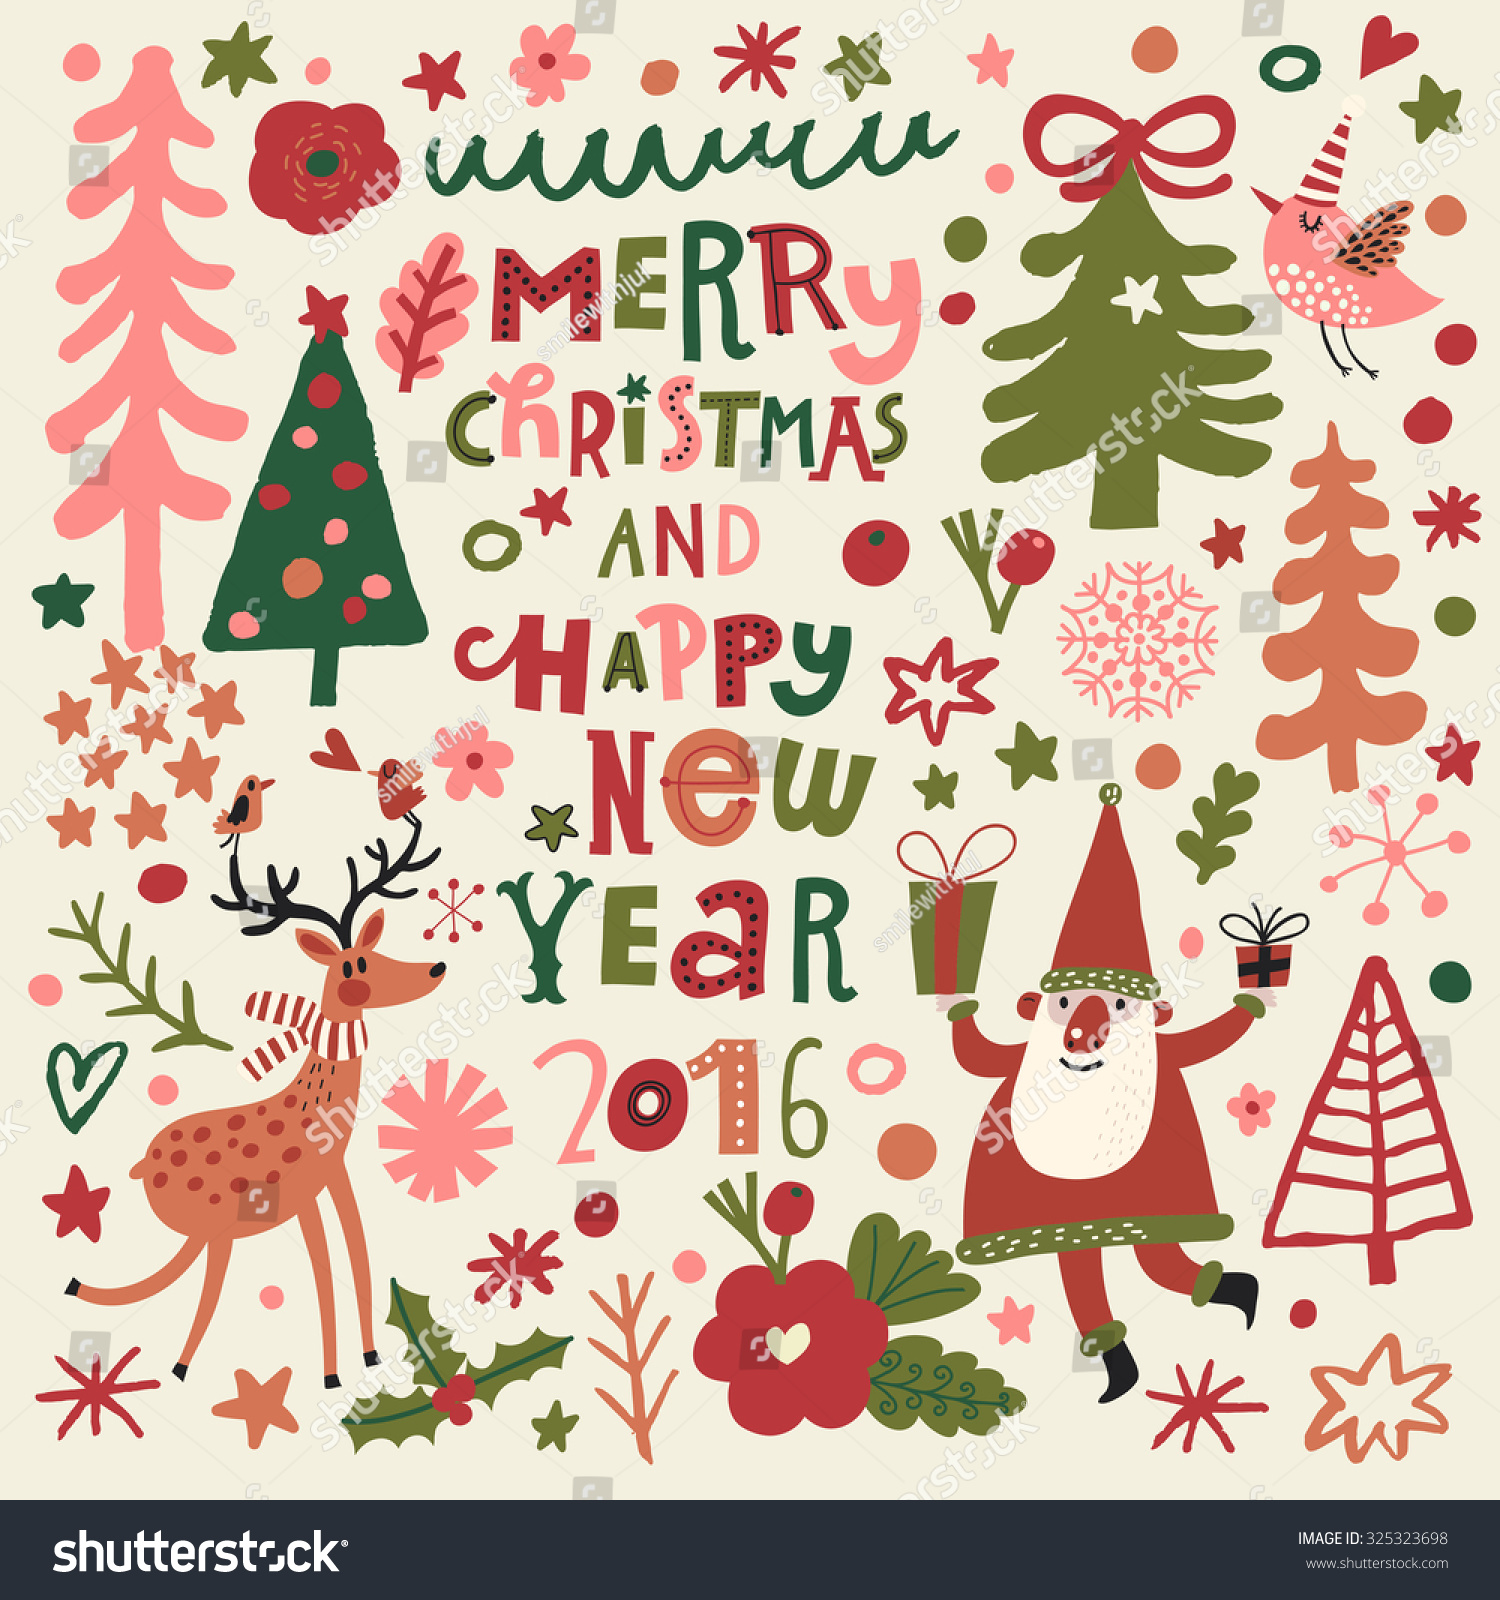 Merry christmas happy new year 2016 stock vector 325323698 for Wildlife christmas cards 2016